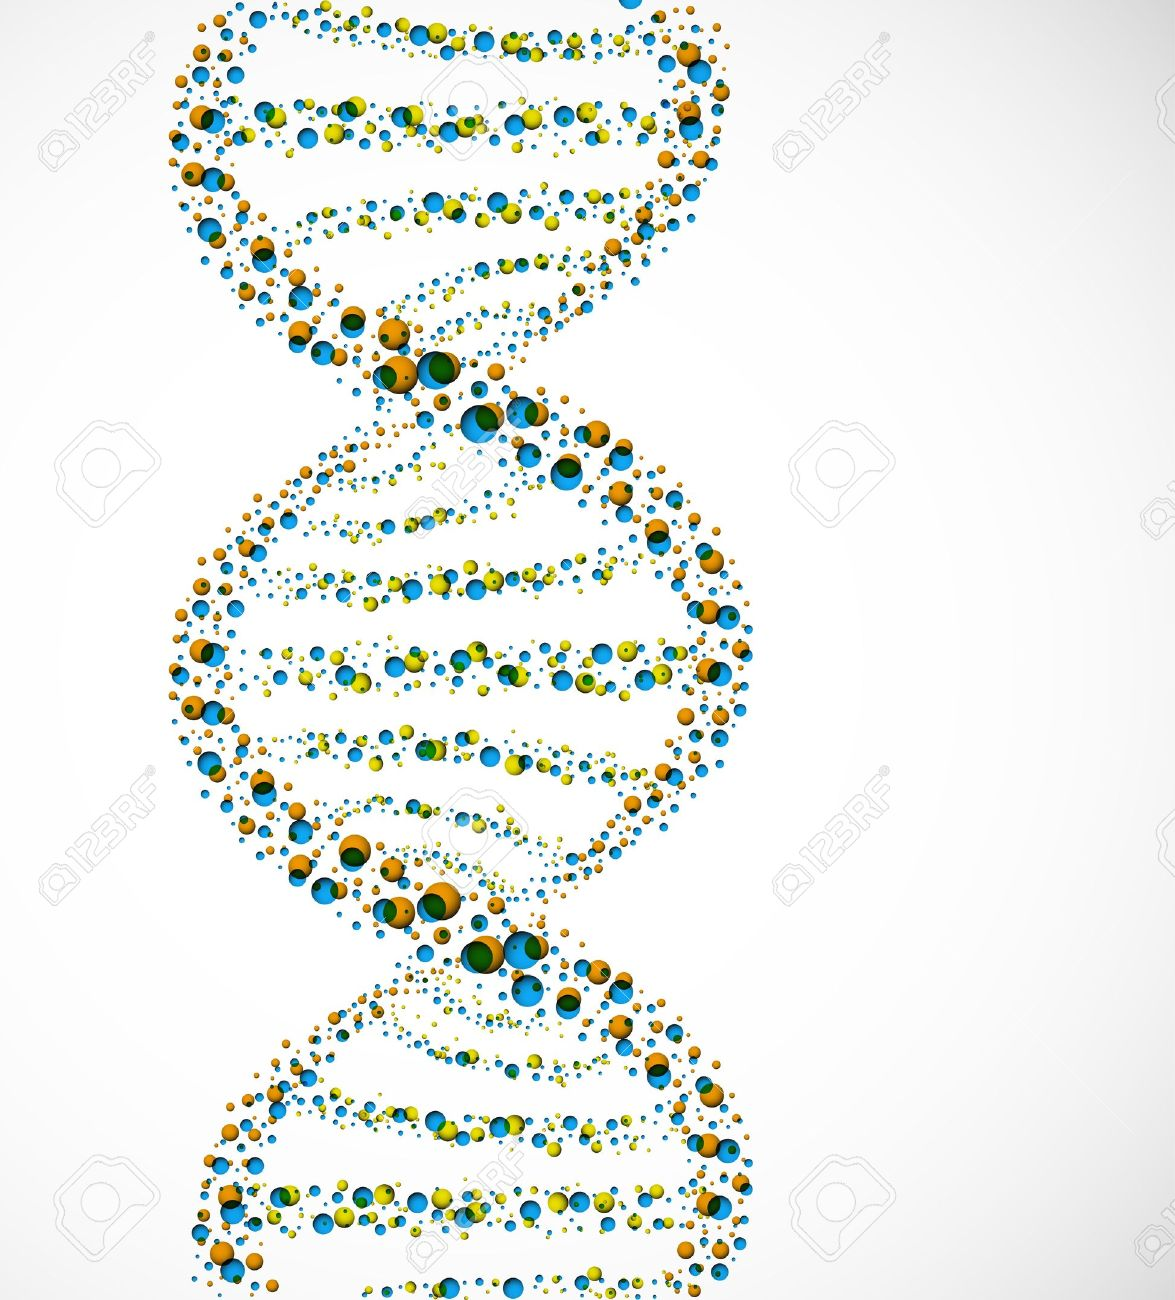 dna molecule of spheres royalty free cliparts vectors and stock